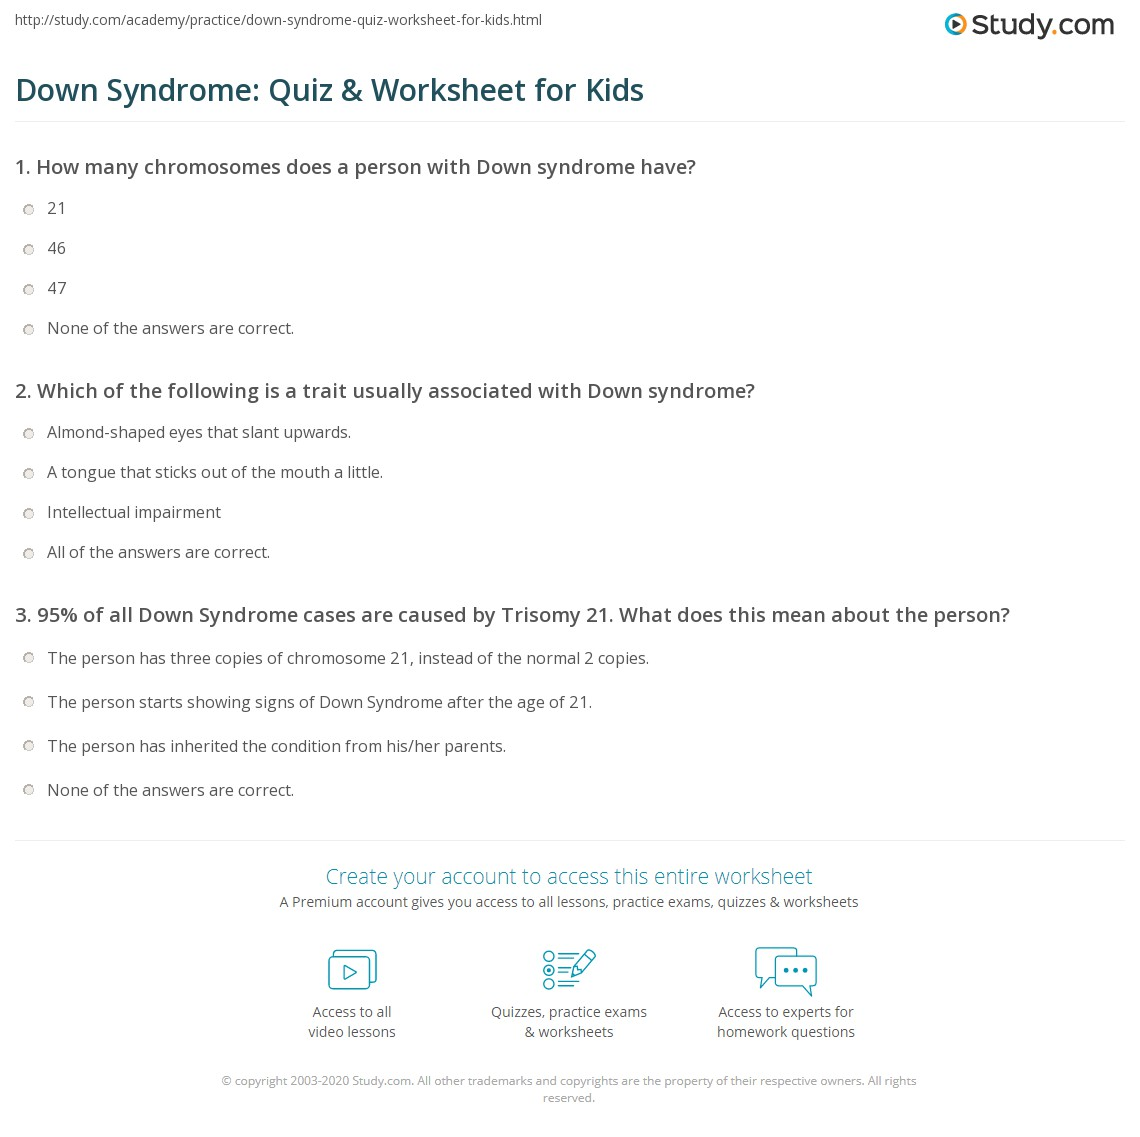 Kindergarten Cosy Cell Division Worksheets Middle With The together with looking inside cells worksheet answers Image of looking inside cells moreover Number of Chromosomes Questions   Name Date Period Number of additionally Onion Cell Mitosis Worksheet Answers Ion Cell Reference Archives Wp furthermore  further Diploid And Haploid Worksheet Answers   Free Printables Worksheet in addition  in addition Quiz   Worksheet   The Genome   Study also Gene and Chromosome Mutation Worksheet Answer Key   Briefencounters further Cell Division Mitosis And Meiosis Worksheet Answers Worksheets likewise Chromosome Worksheet together with  together with Meiosis Review Worksheet Stuff to Know Terms to Know in addition 37 Meiosis Review Worksheet Graphics   Gulftravelupdate likewise Solved  Question 6  Mice Have 20 Bivalents Visible In Meio likewise Down Syndrome  Quiz   Worksheet for Kids   Study. on number of chromosomes worksheet answers